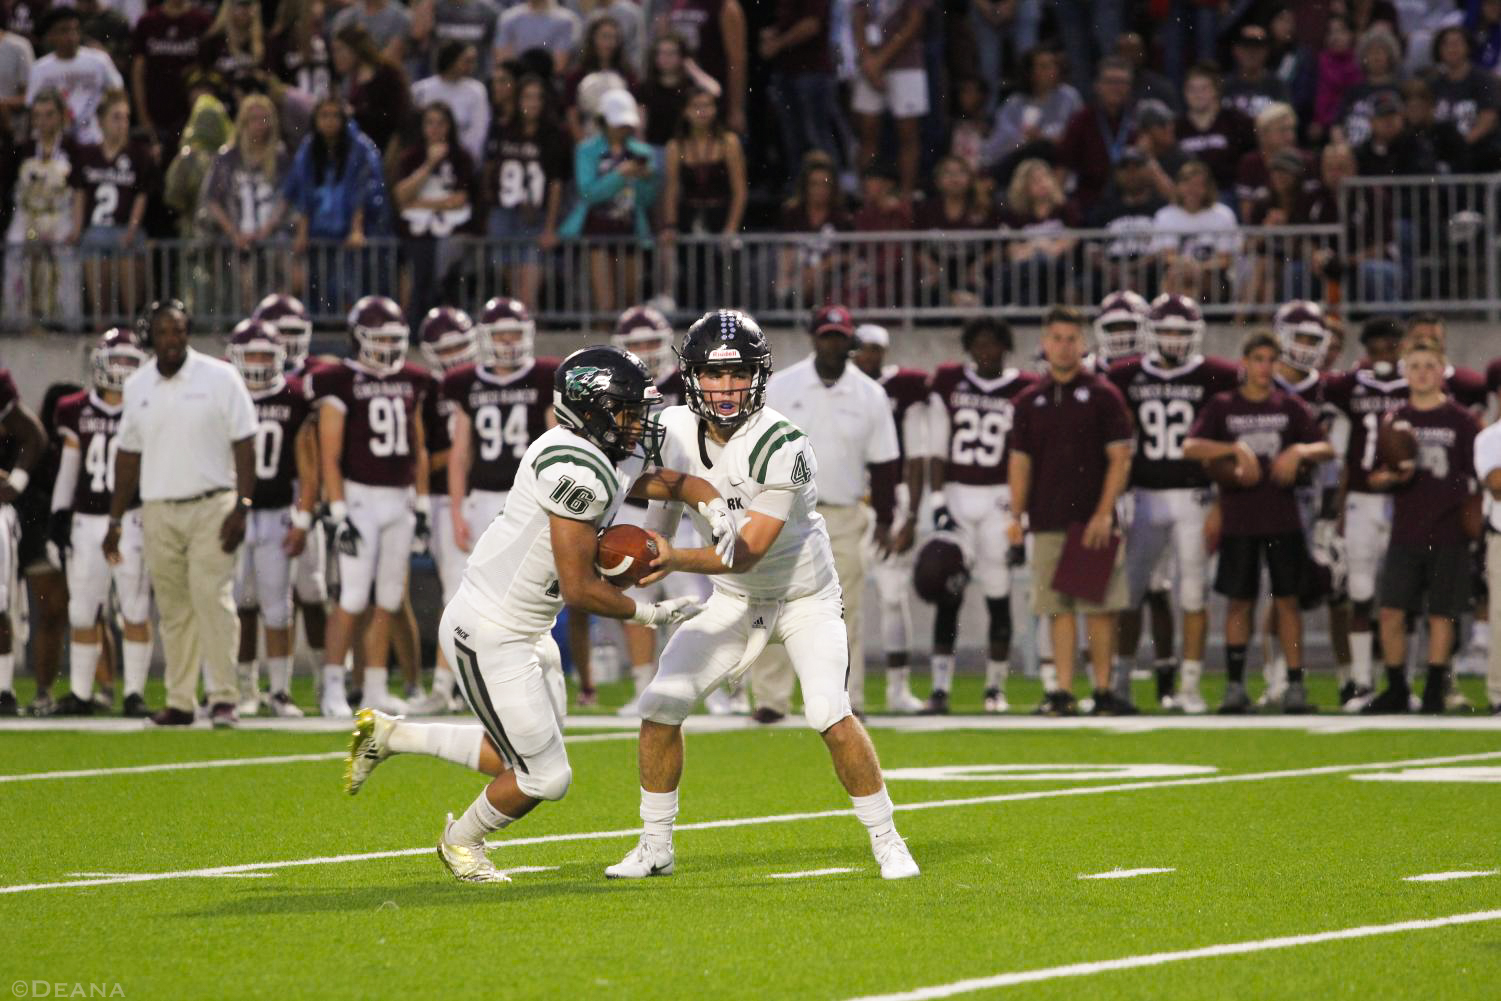 CPFB now sits at 2-2 following their 14-13 victory over Cinco Ranch. Sophomore QB Ryder Hernandez hands off to junior RB Jonathan Stockwell on Sept. 21 at Katy Cinco Ranch.